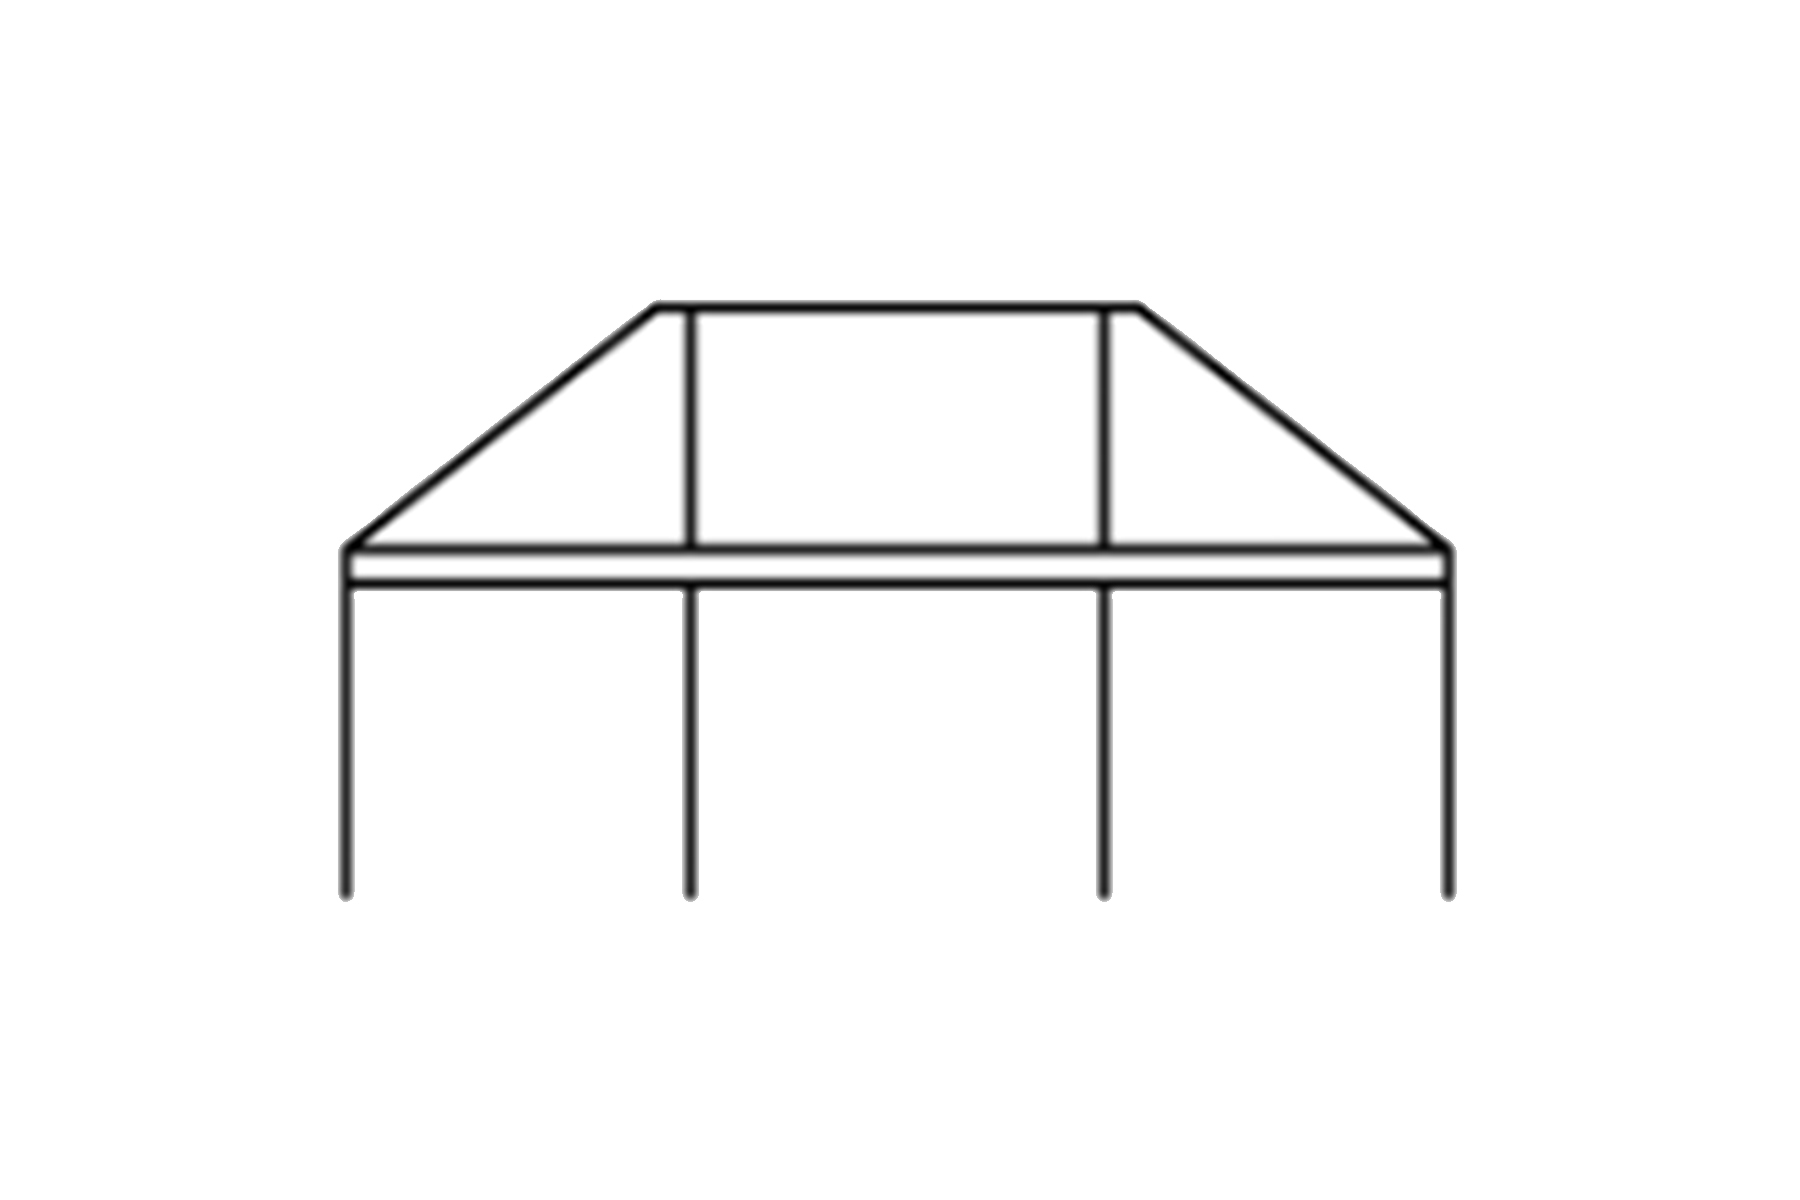 40 x 70 Frame Tent